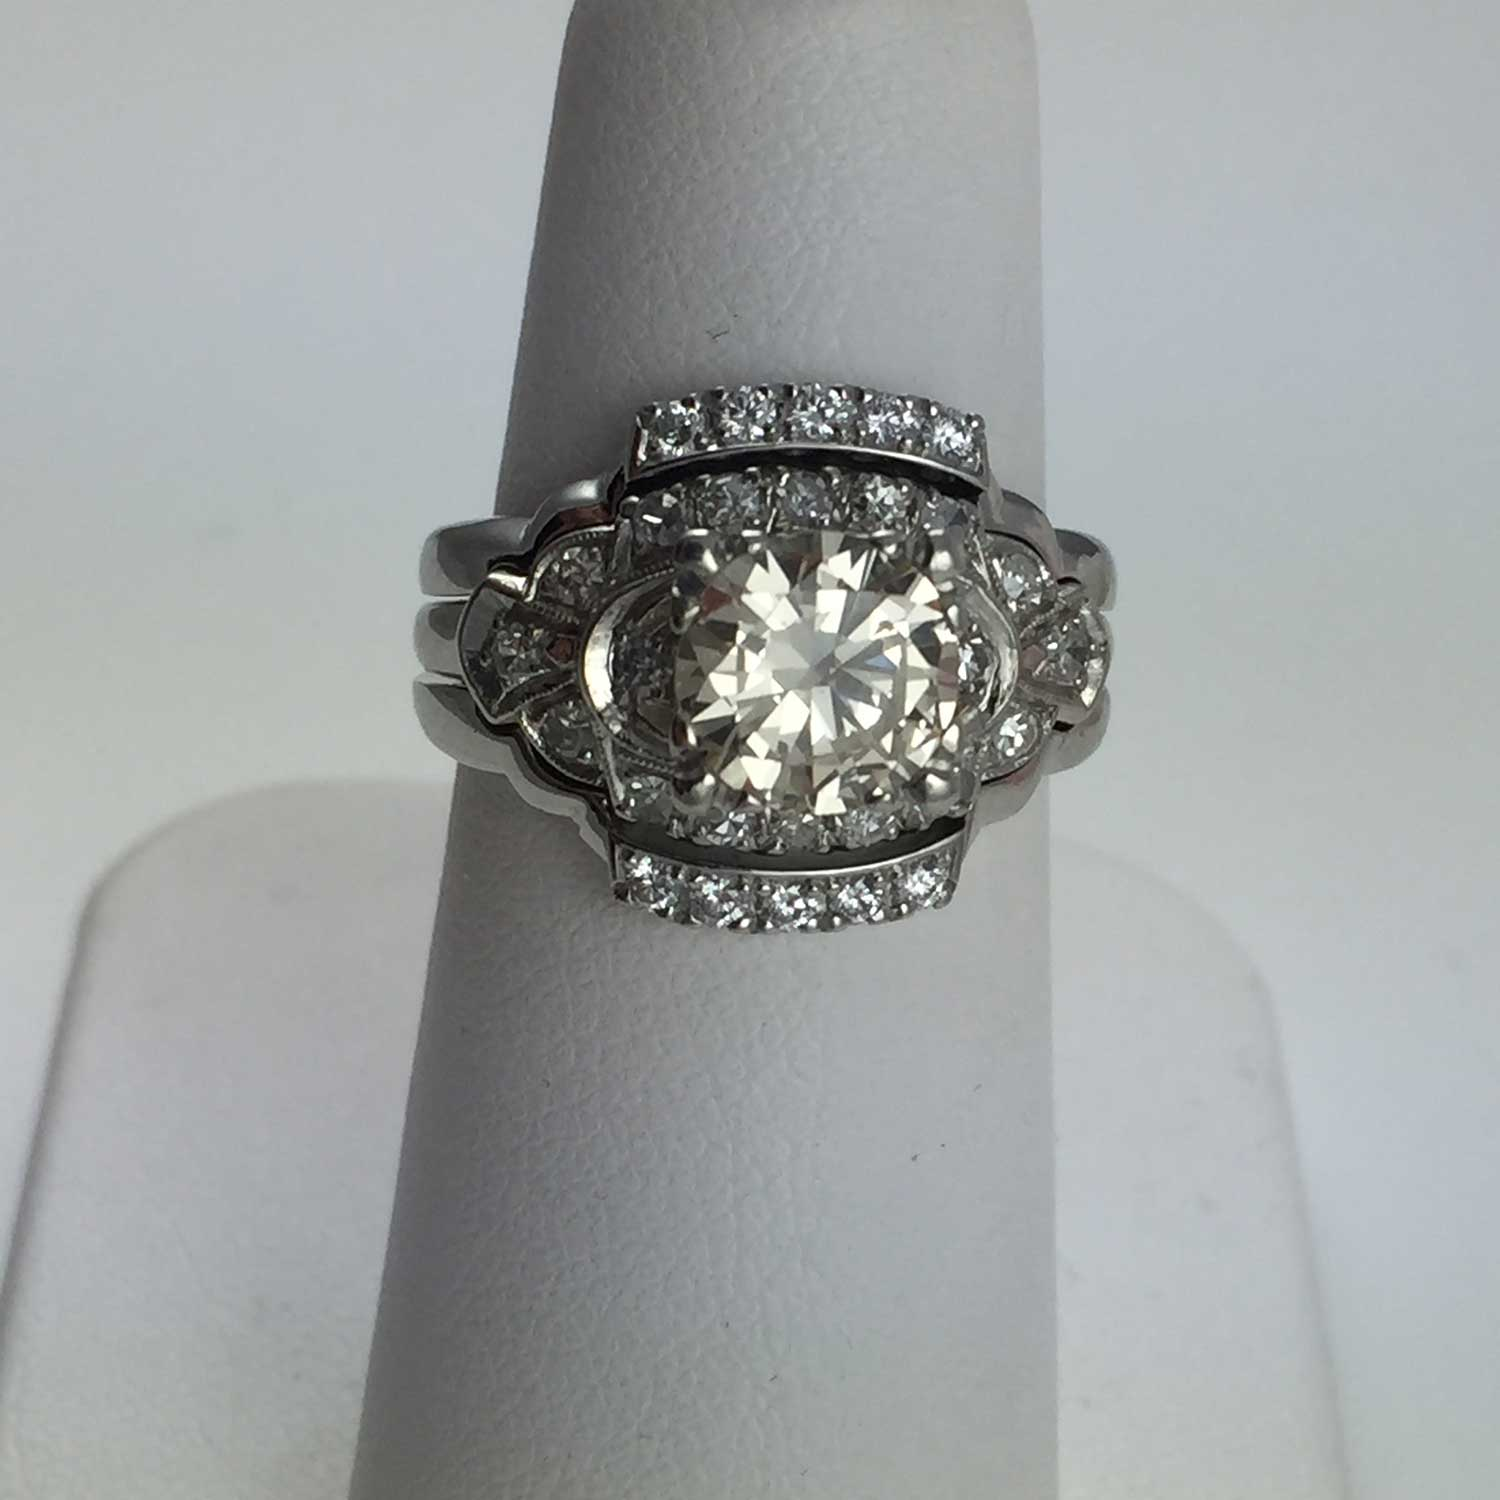 jewellery rings engagement platinum jewelers diamond nj latest setting dream edward custom